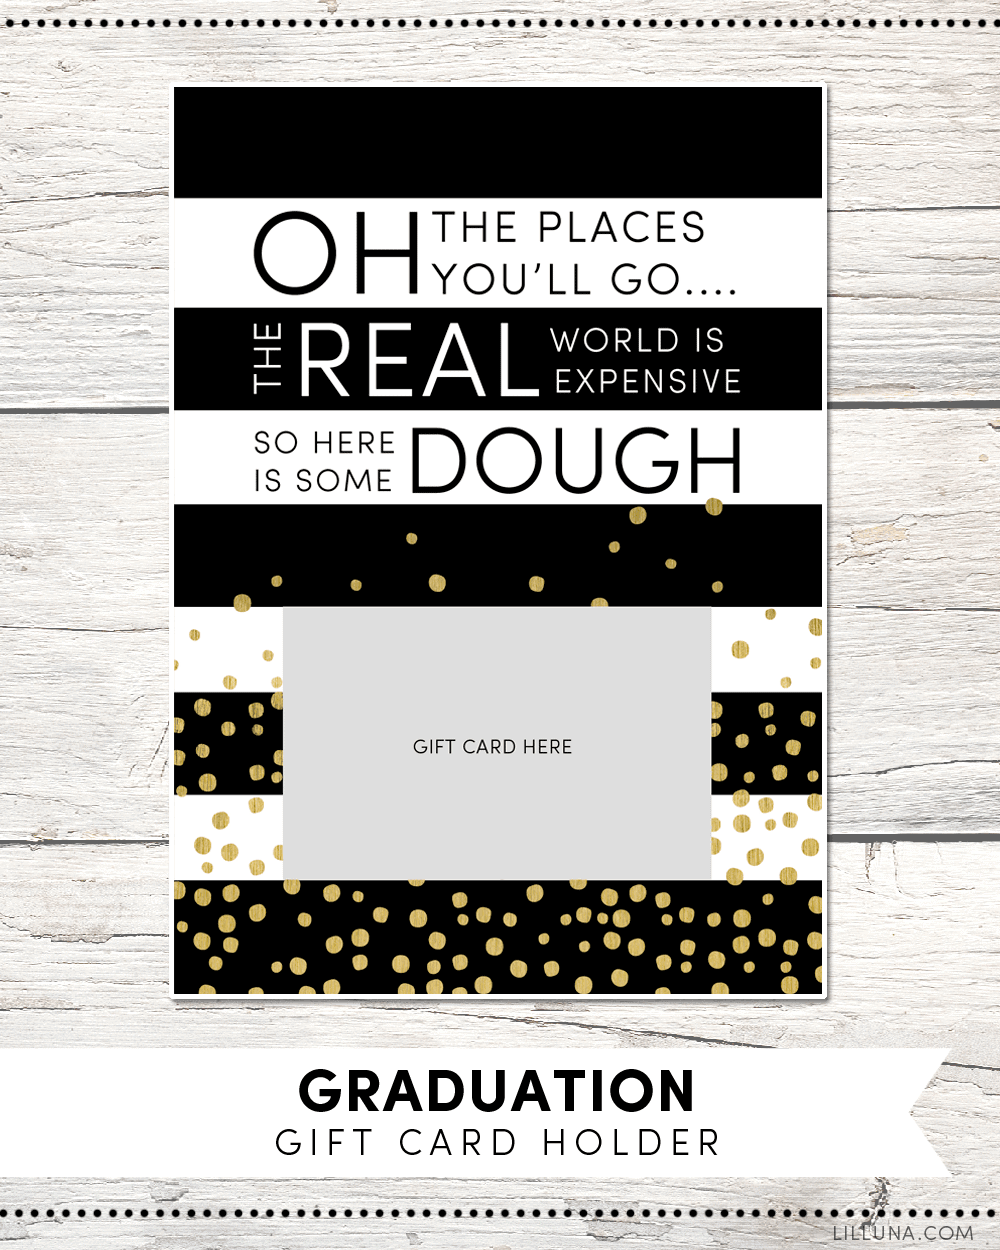 free graduation gift card holder print just attach a gift card and give to your - Gift Card Places